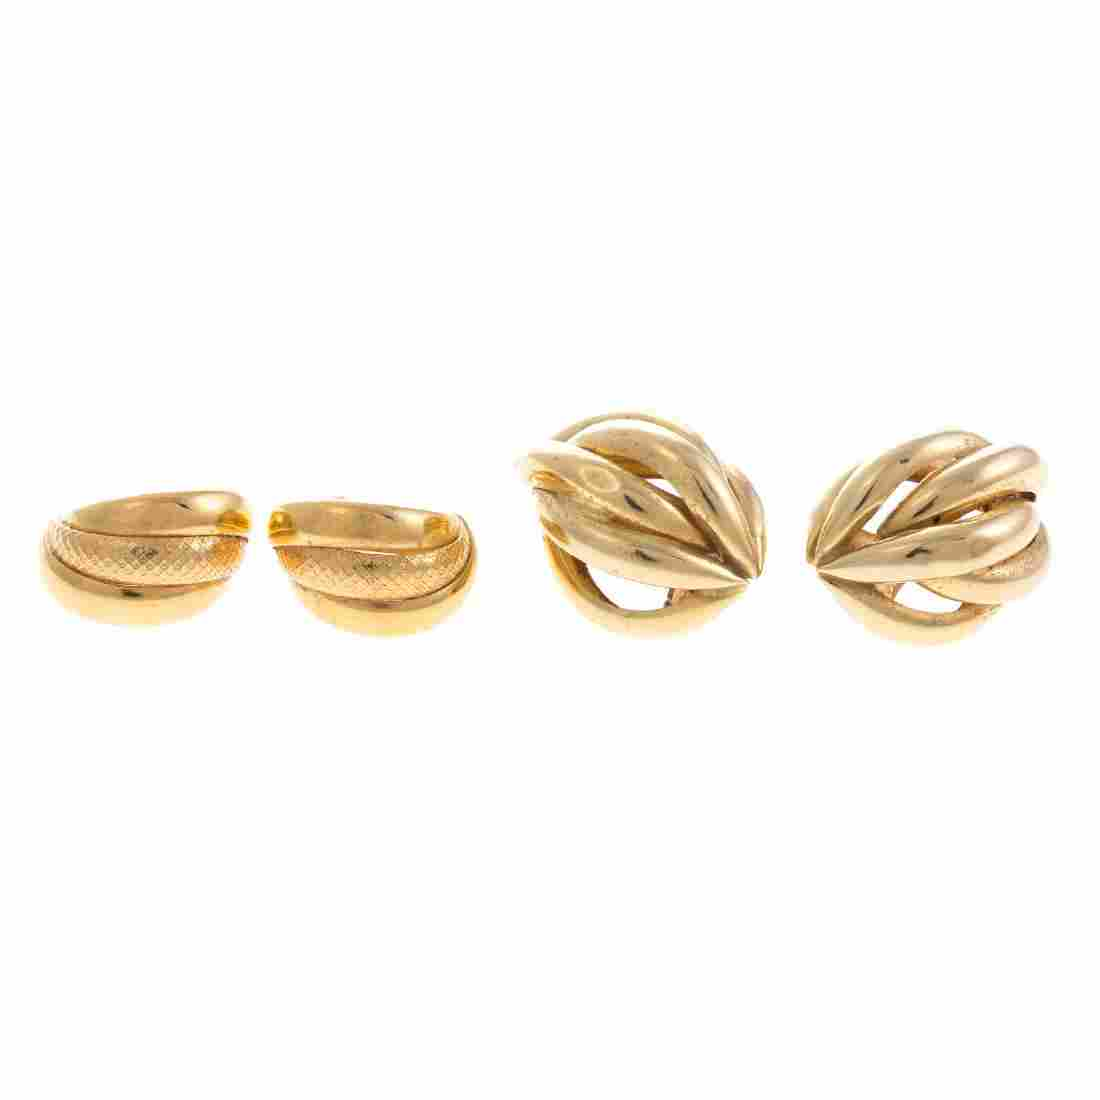 Two Pair of Lady's Earrings in 14K Gold